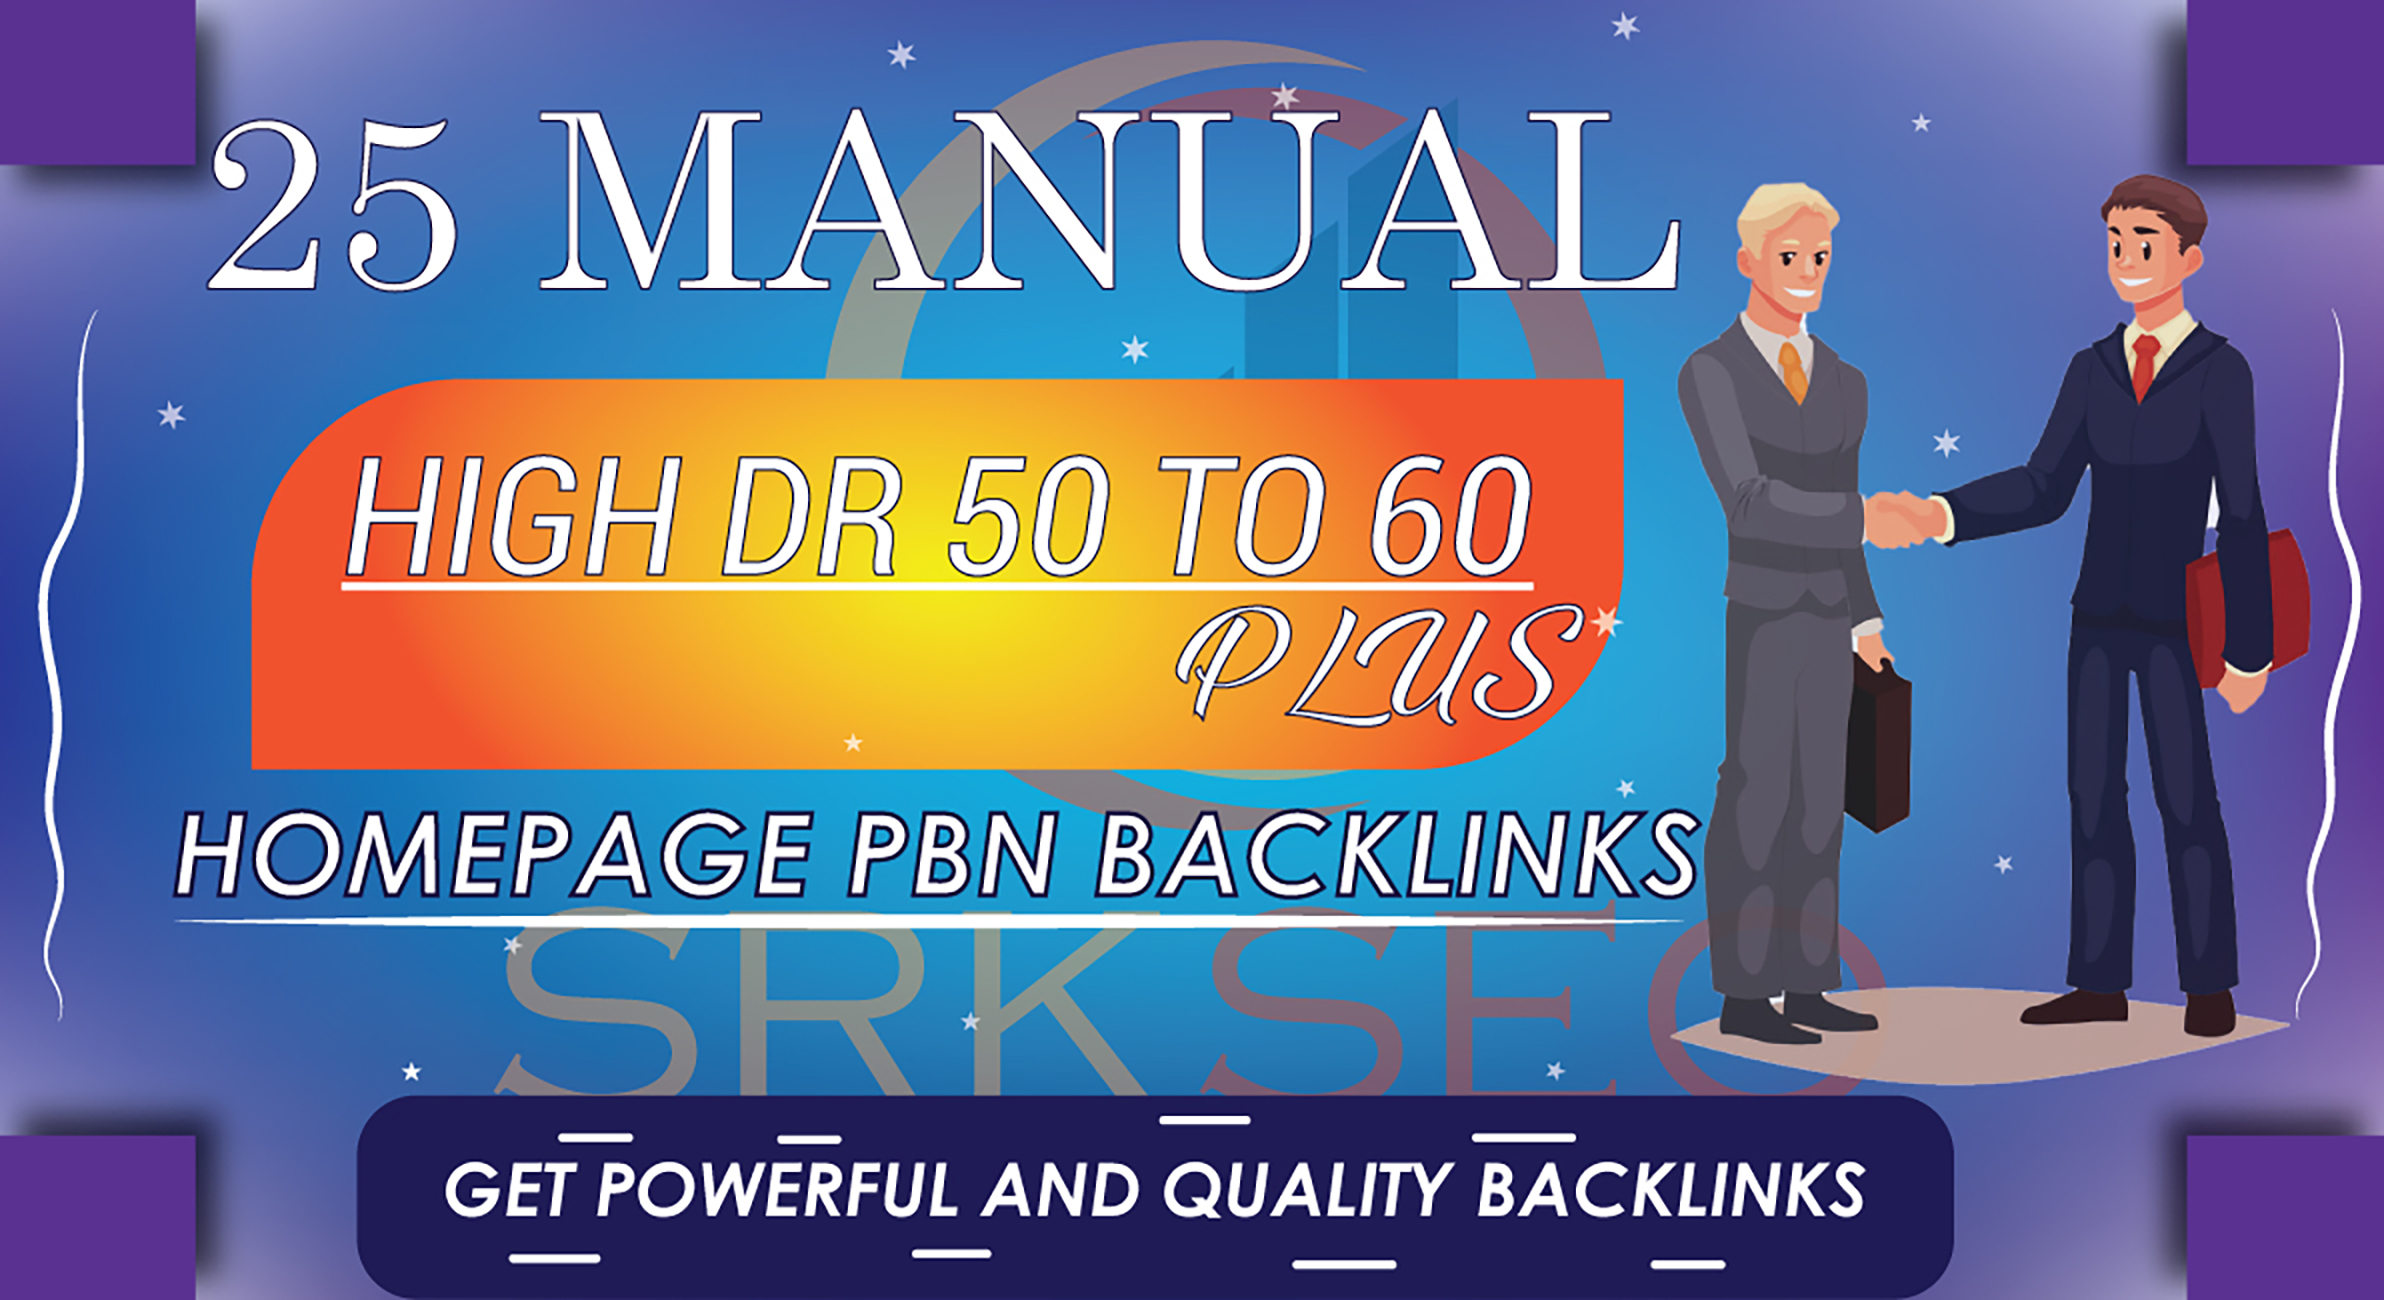 25 Manual High DR 50 to 60 Plus Homepage PBN Contextual Backlinks